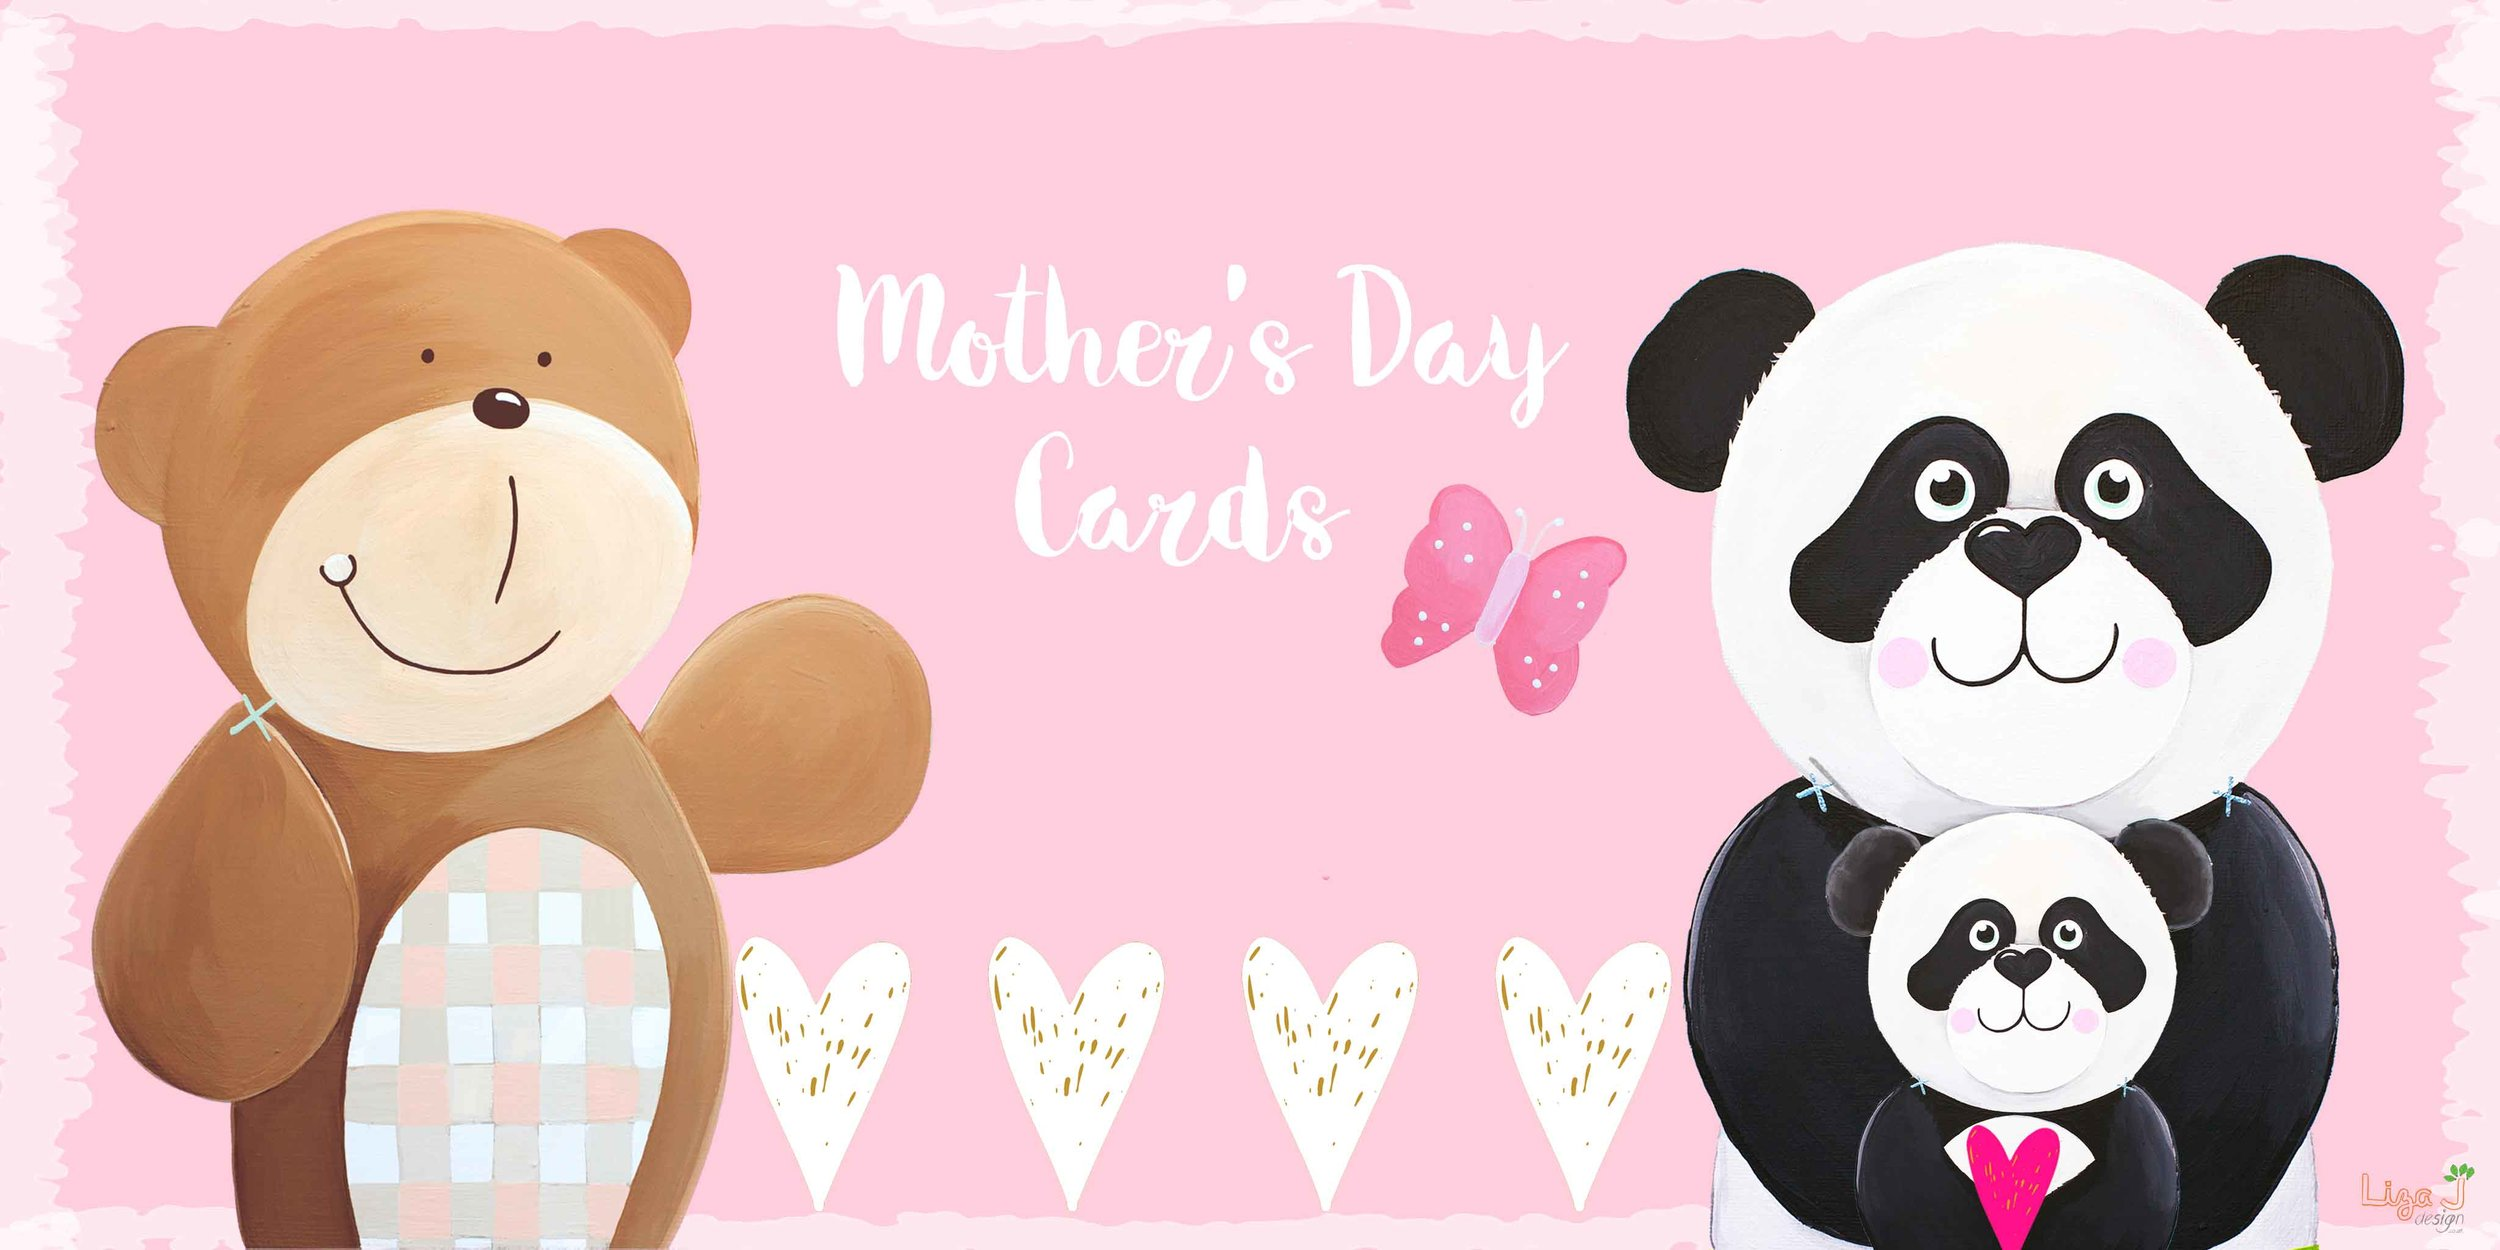 Mother's Day Card Shop Open - From Bears to Pandas explore our characters in the Mother's Day Card range, perfect for a first Mother's day, dog mummies and grandparents.